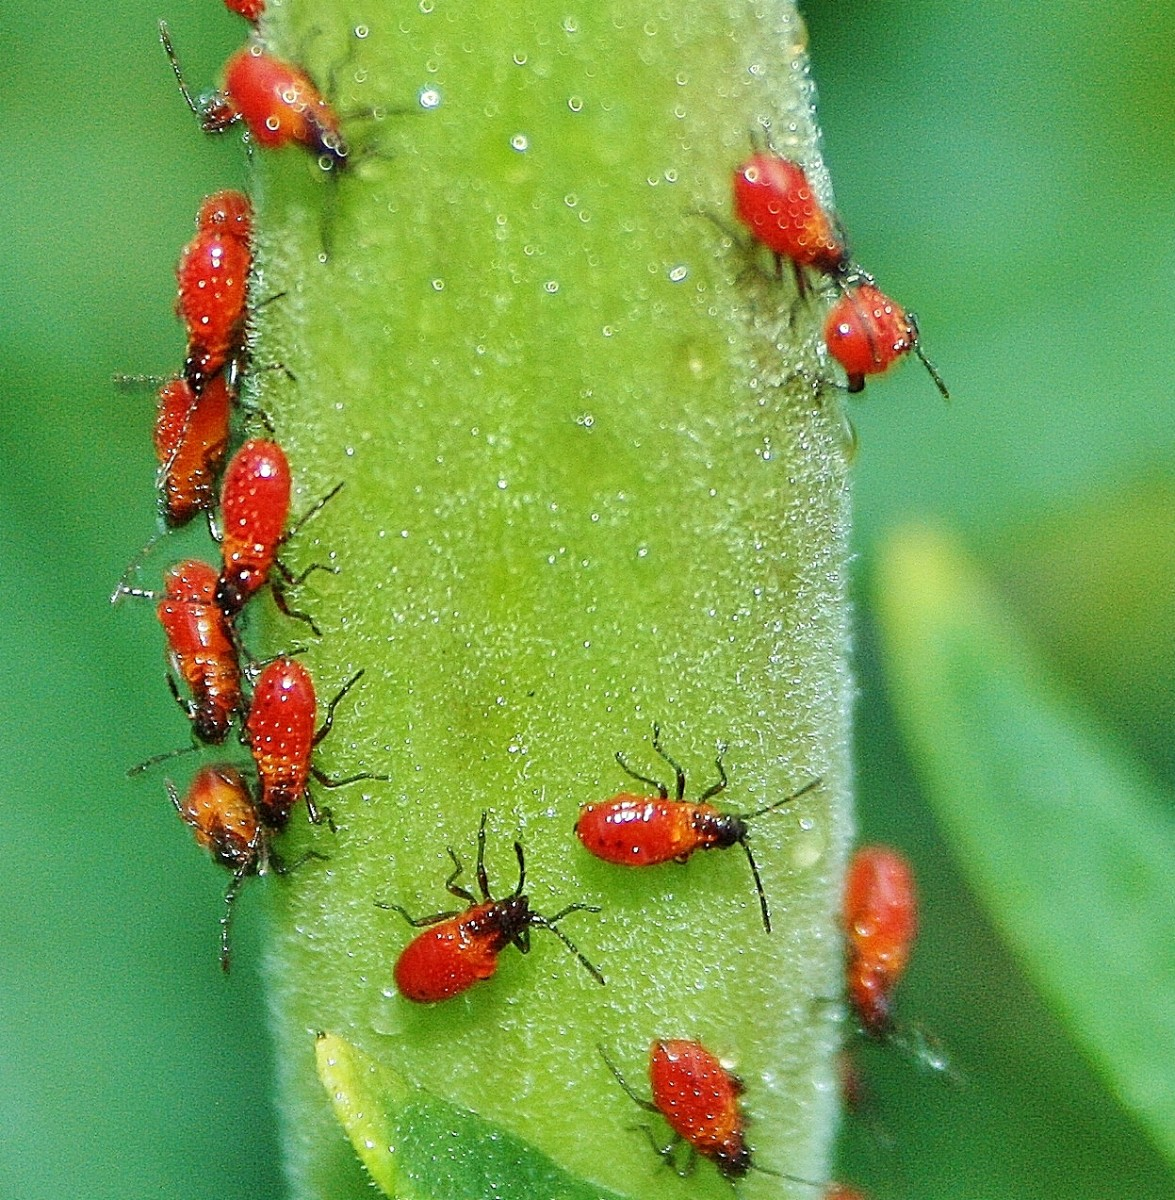 Adult aphids are small & pear-shaped pests with cornicles that extend from their abdomens. They are usually black, green, orange, red, white or yellow. Pictured: Adult butterfly weed aphids.